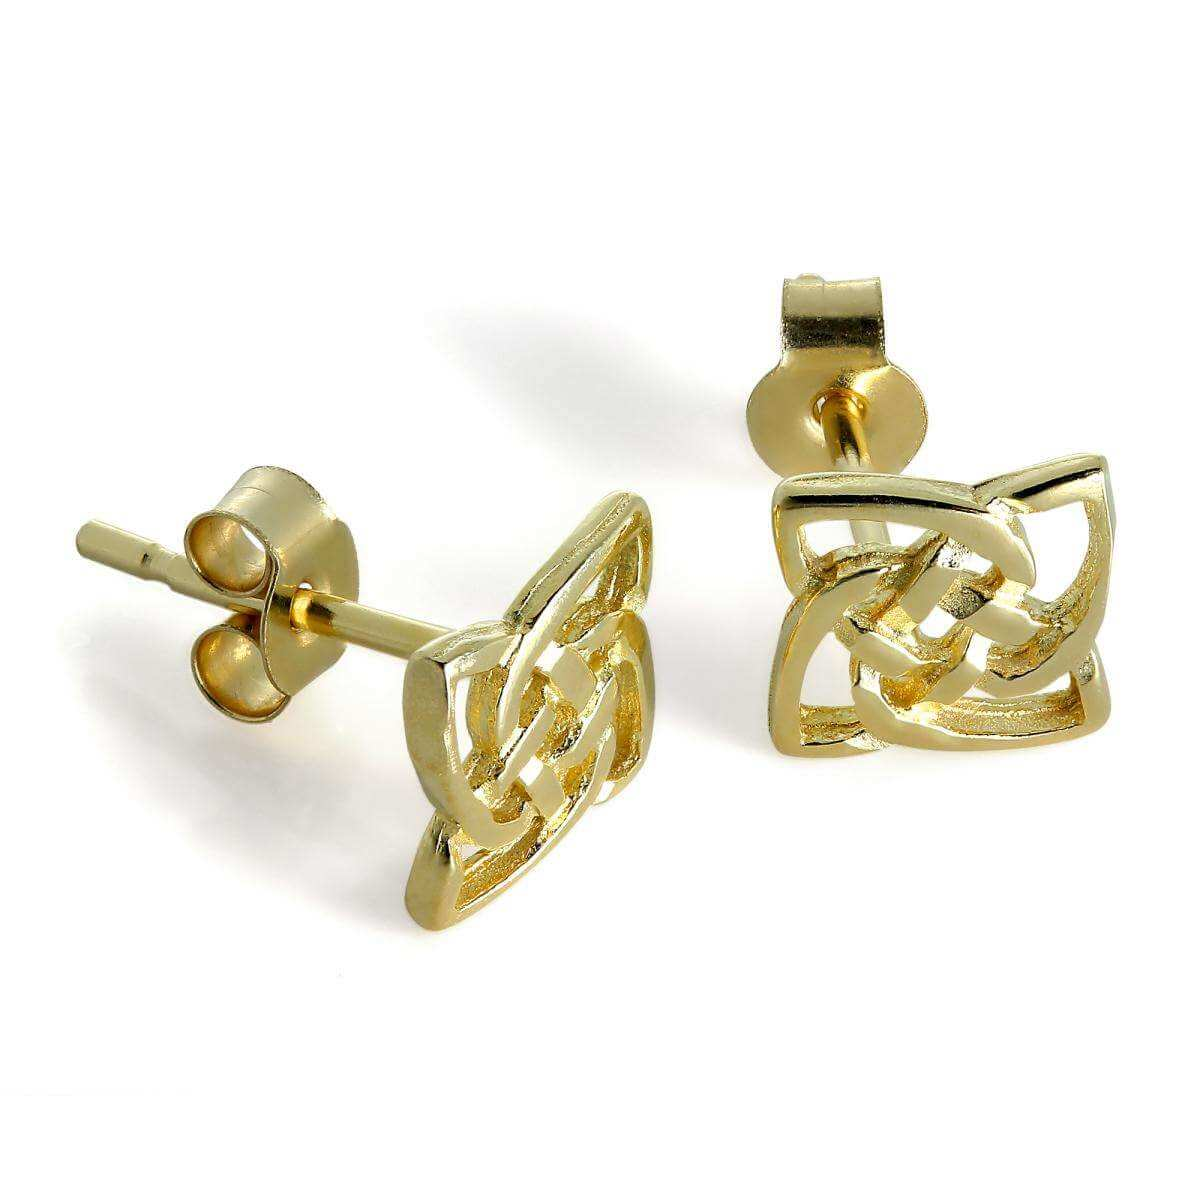 9ct Gold Square Celtic Knot Stud Earrings